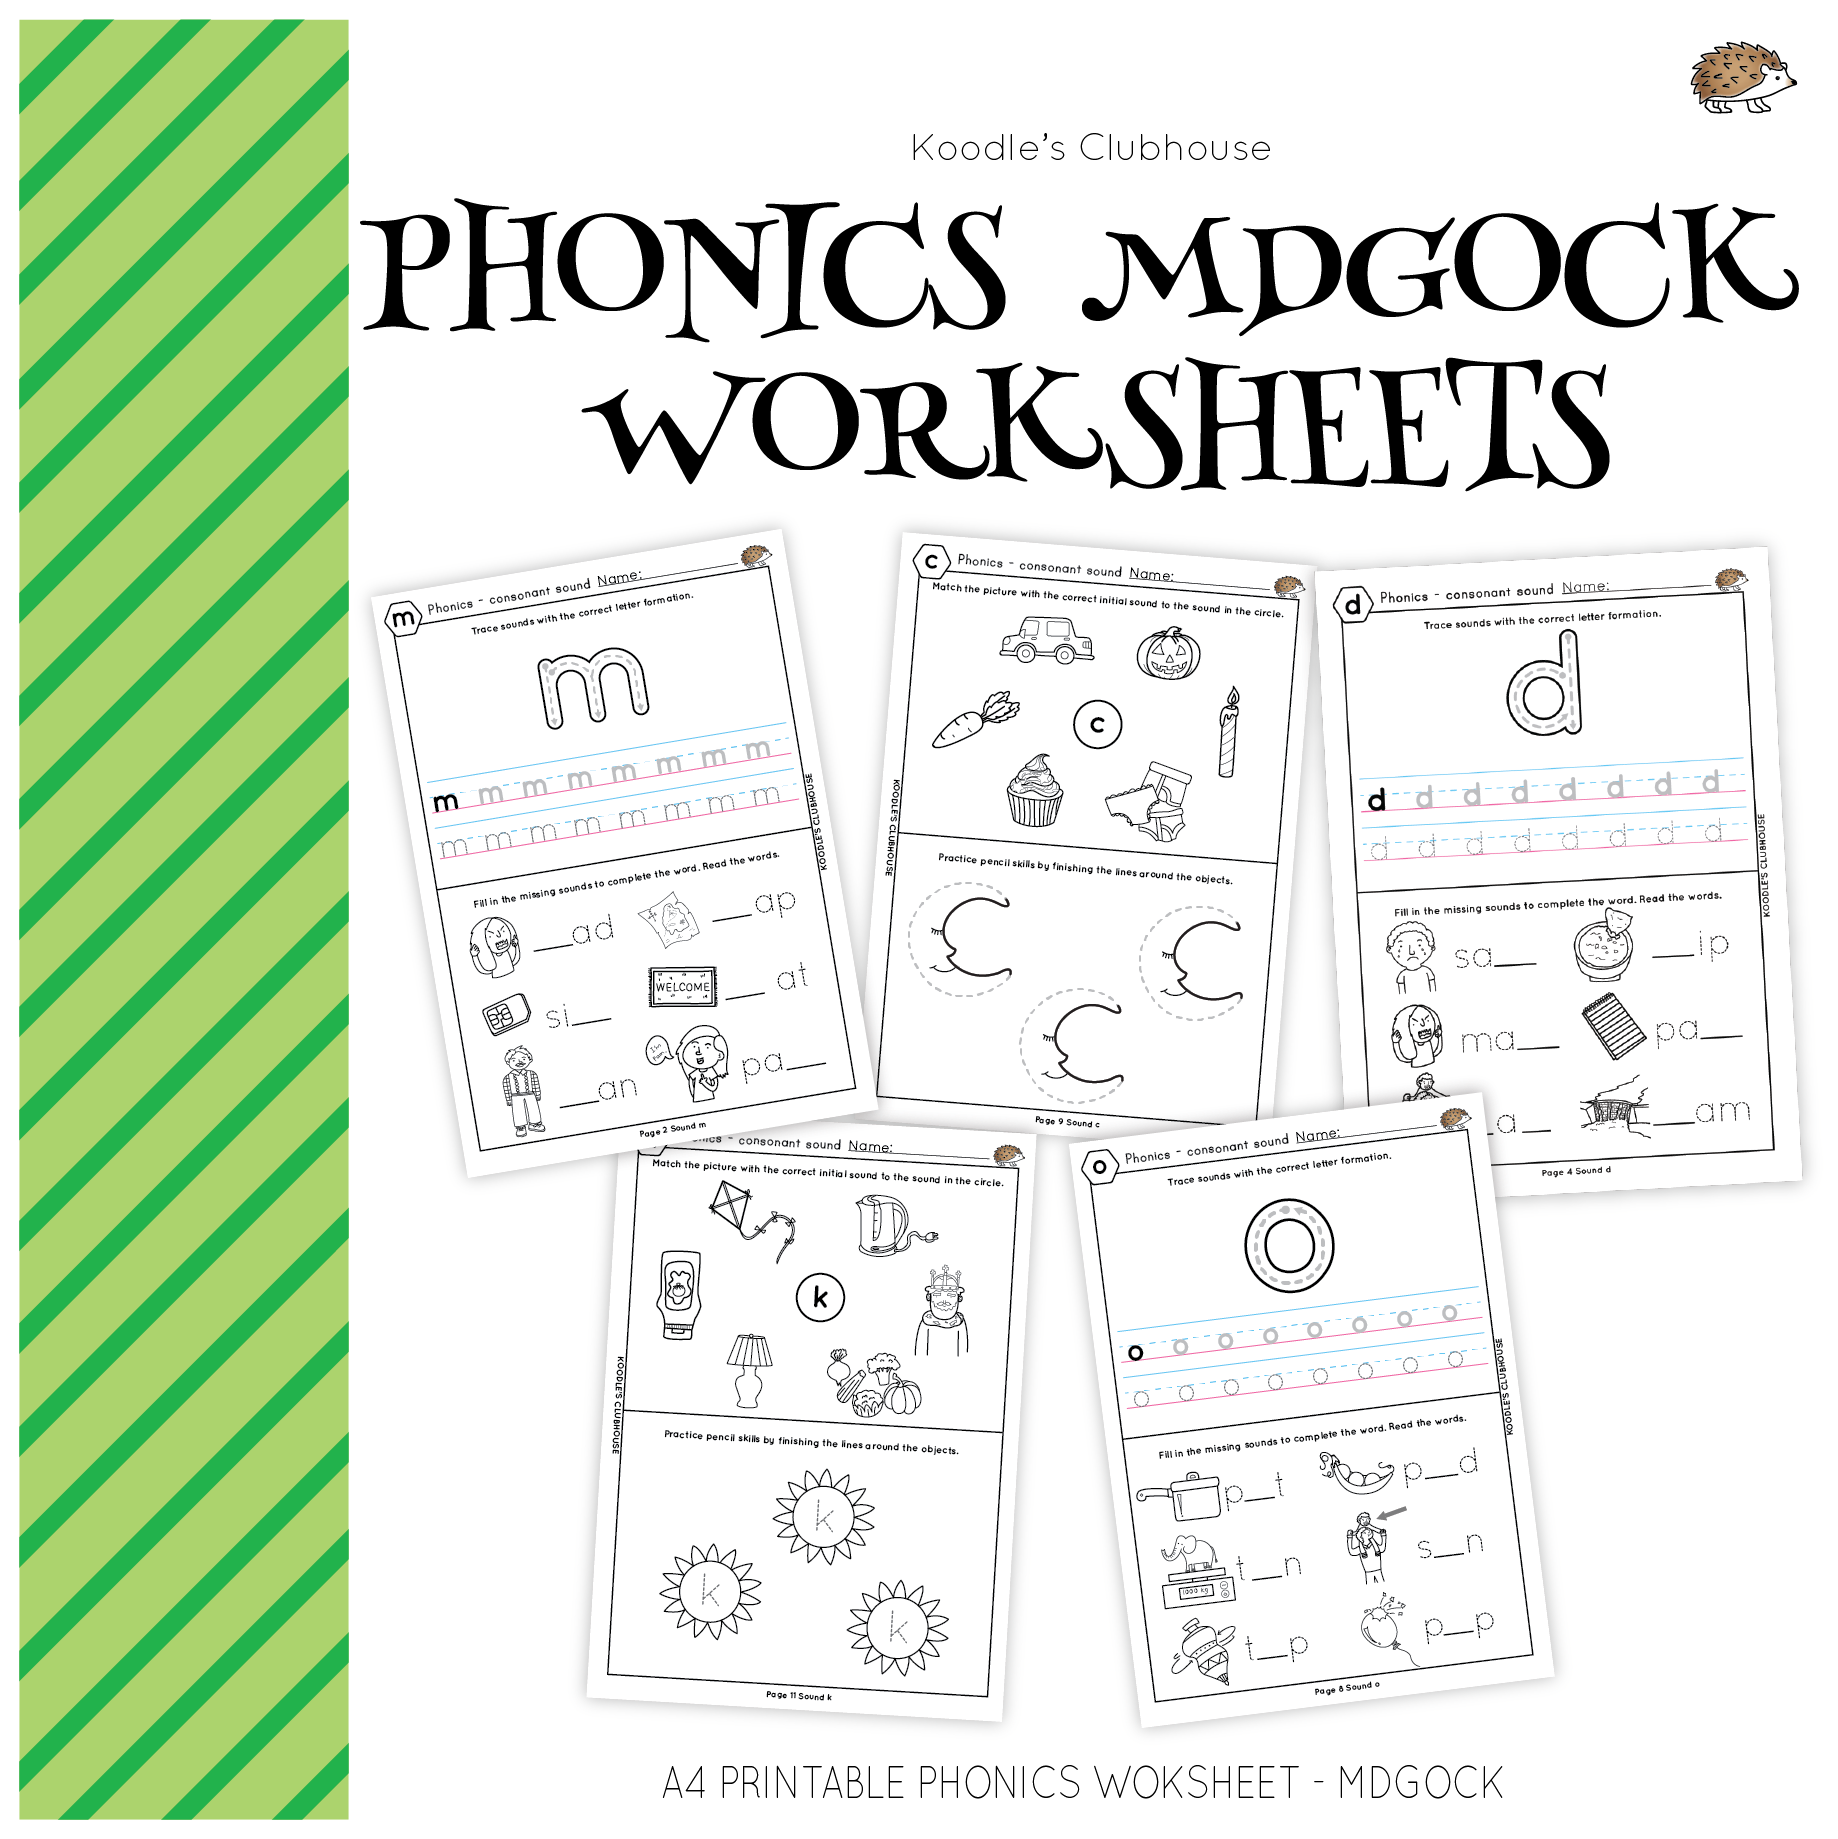 Phonics Mdgock Worksheets From Koodle S Clubhouse